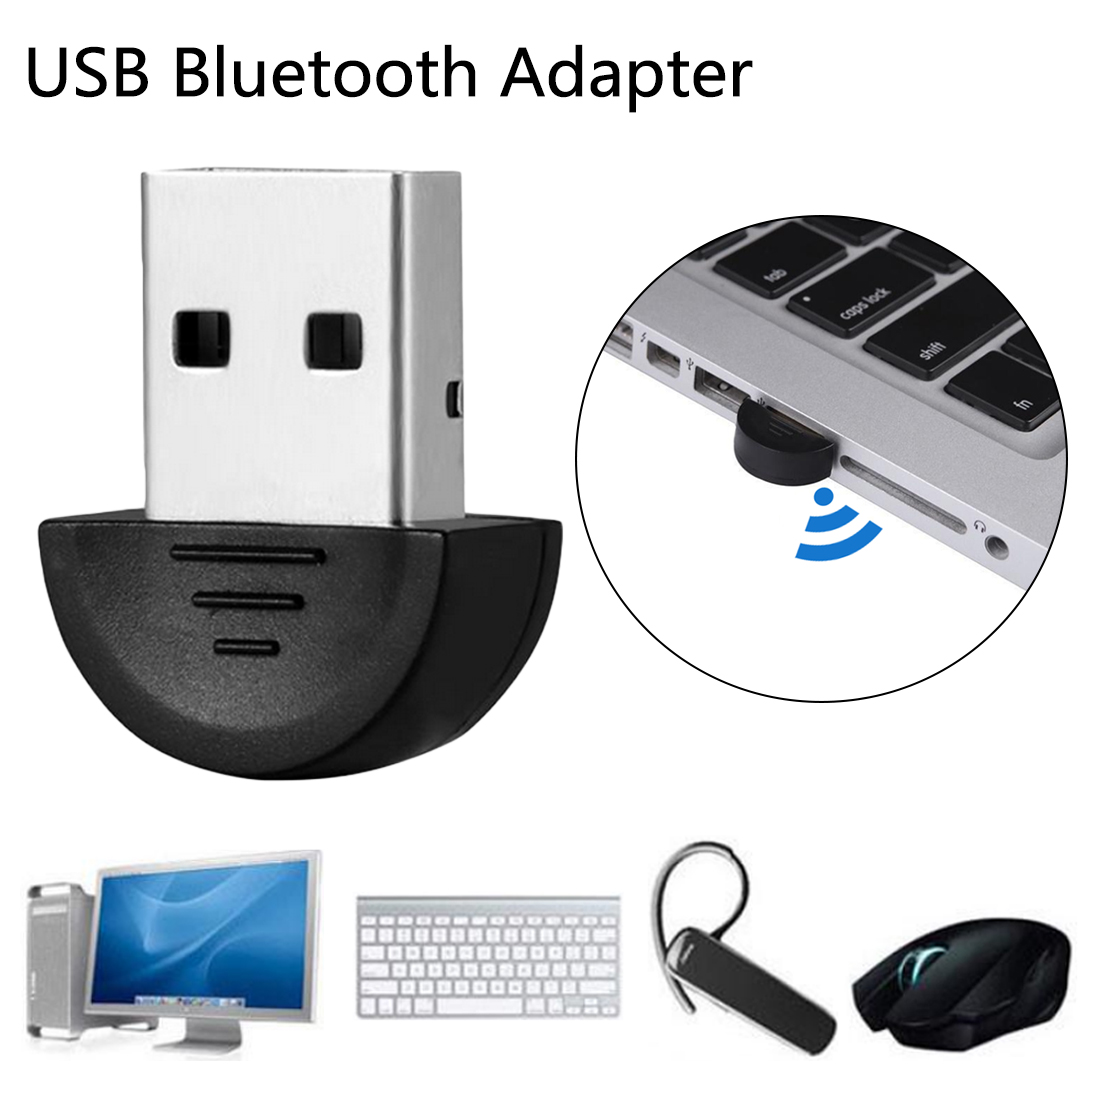 Mini USB Bluetooth Adapter V2.0 CSR Dual Mode Wireless Bluetooth Dongle 2.0 Transmitter For PC Laptop Win XP Vista7/ 8/10